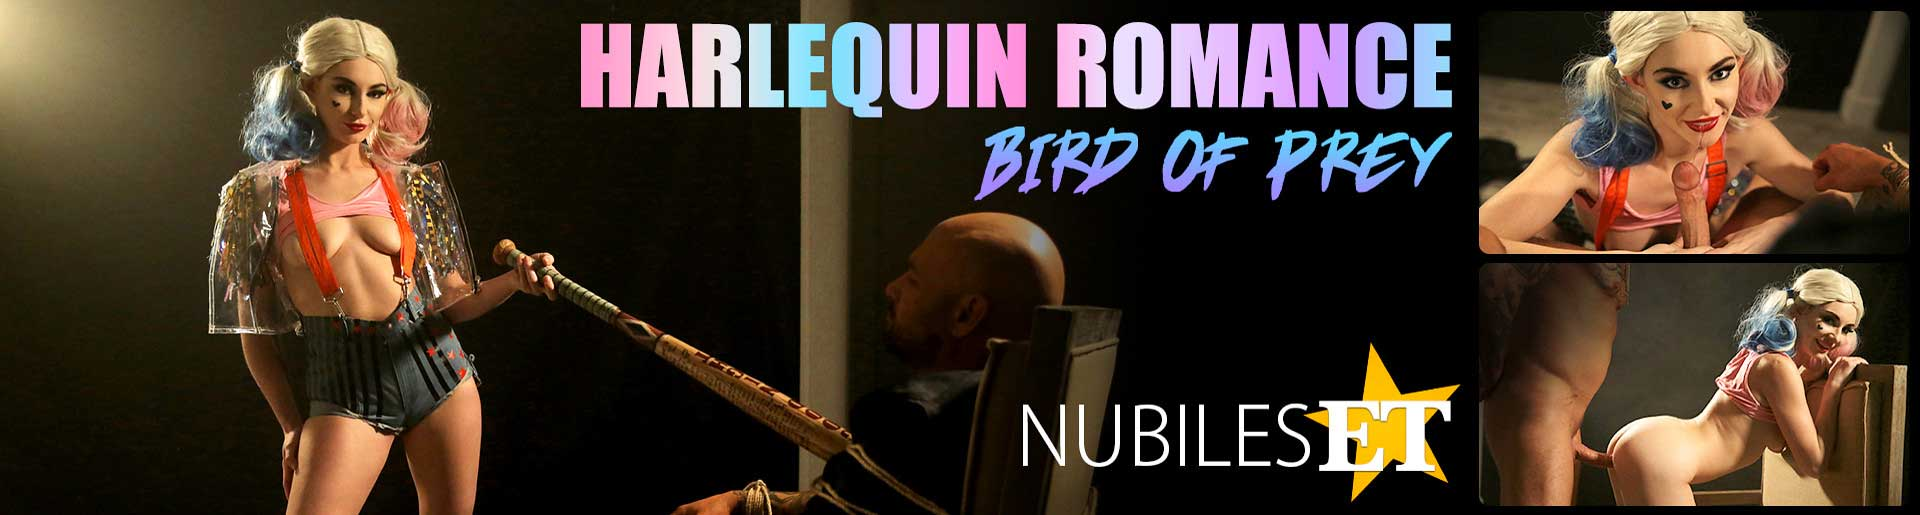 Nubiles.net - Harlequin Romance - Bird of Prey